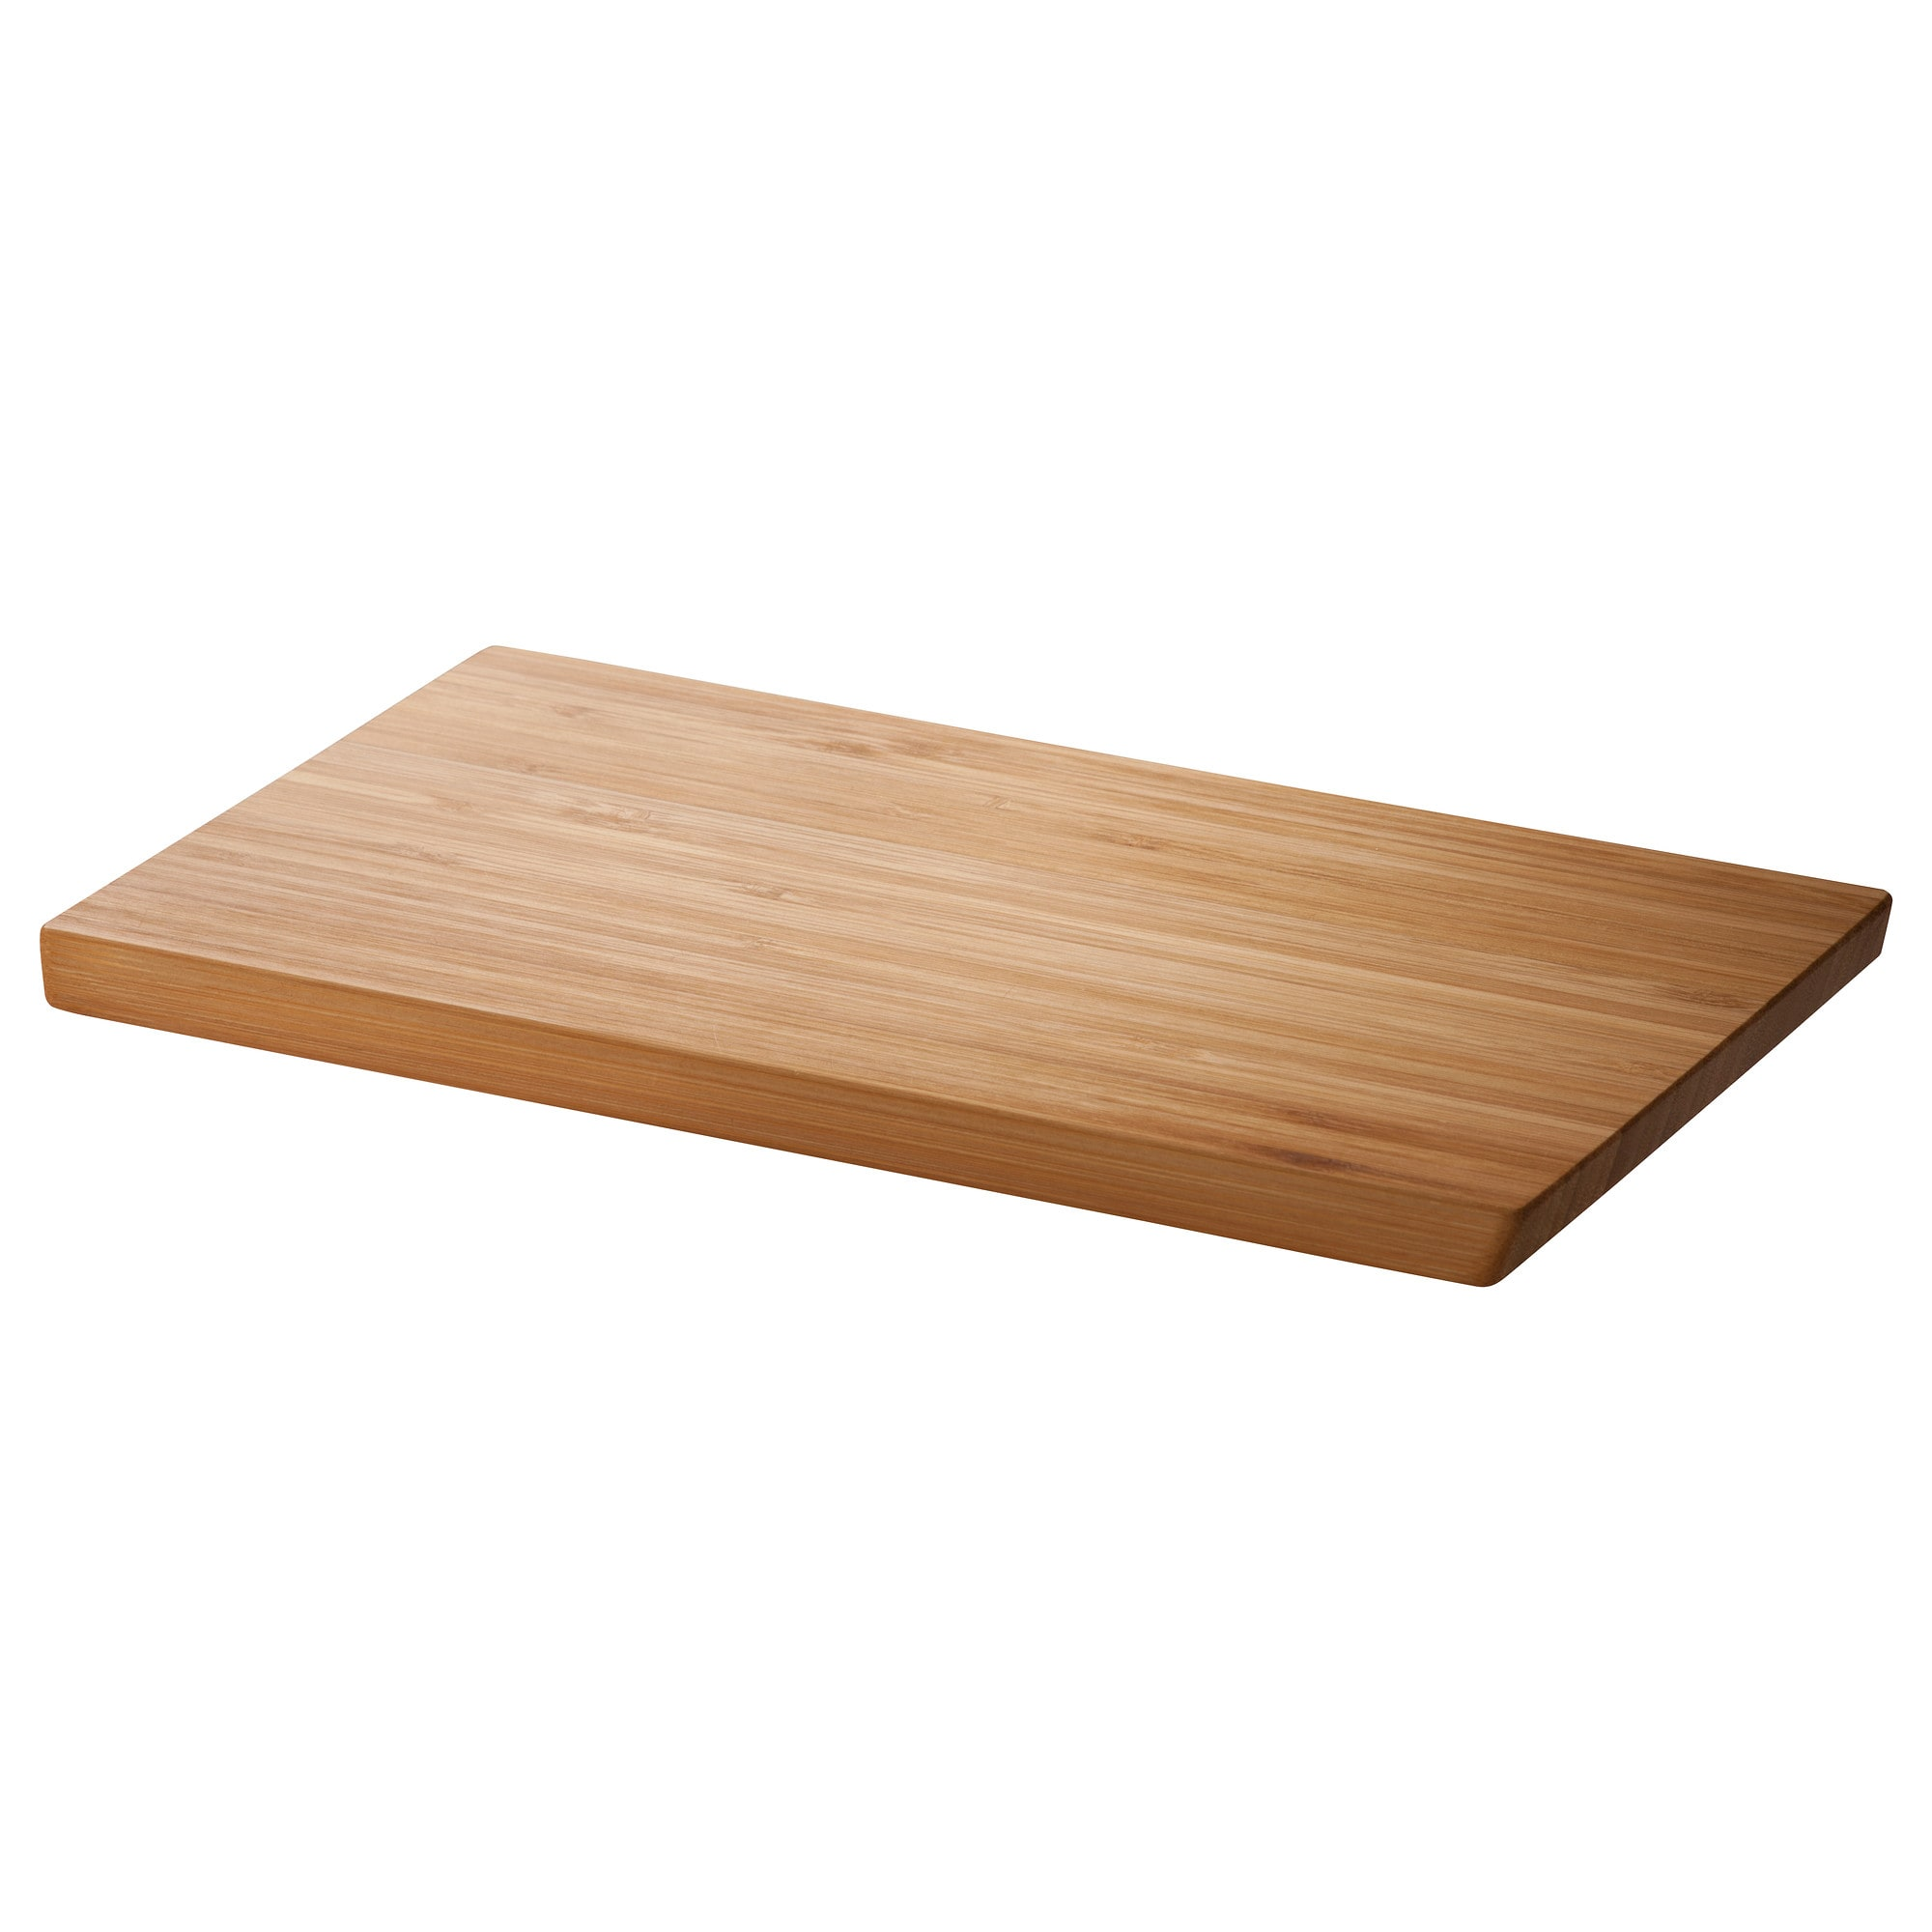 bamboo chopping board.JPG